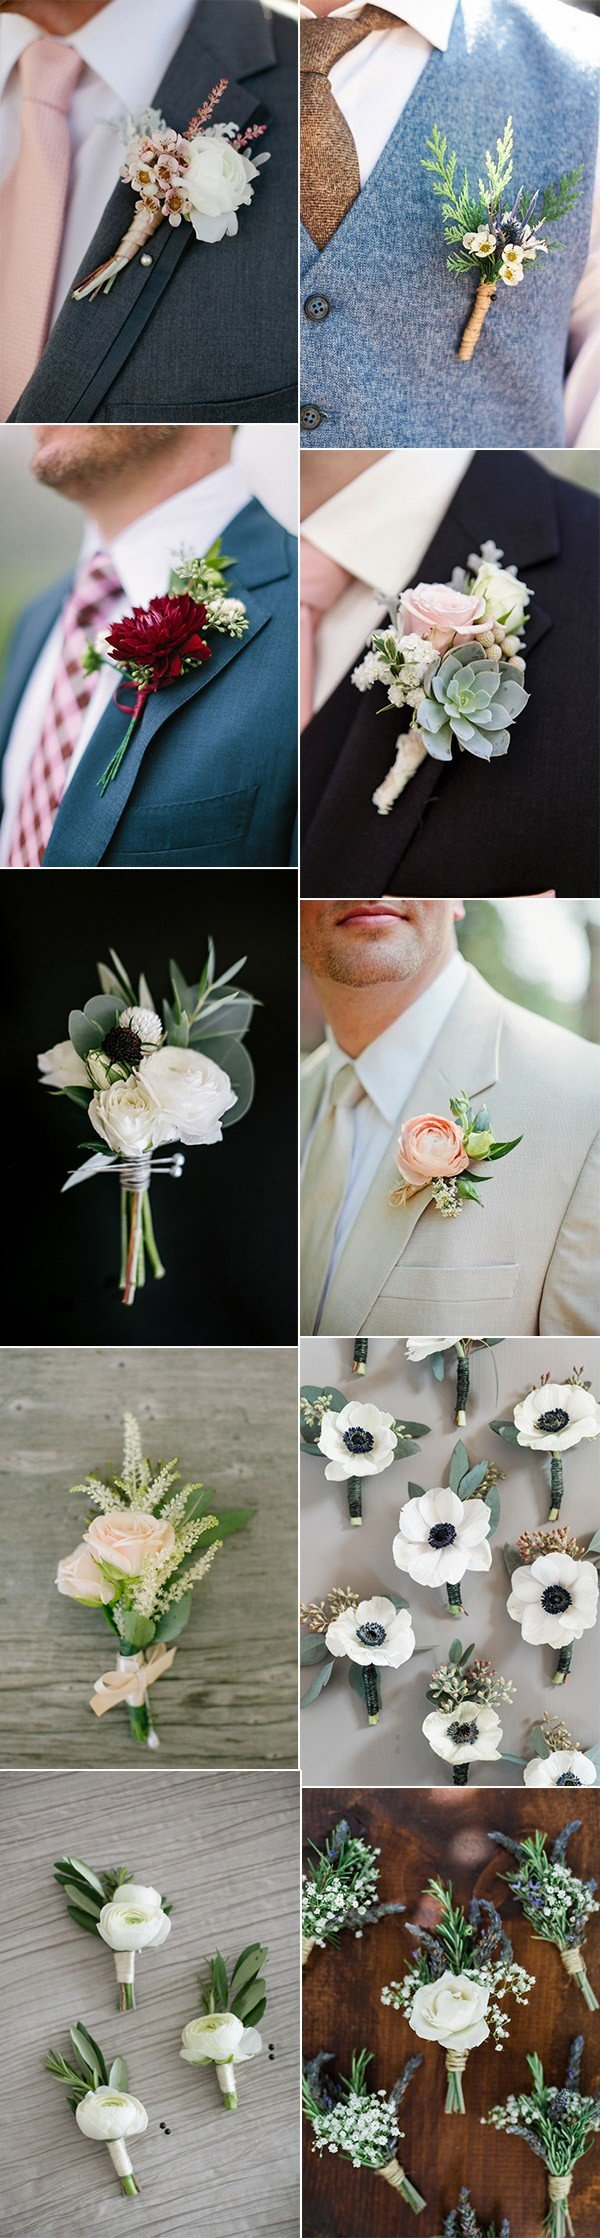 trending chic wedding groomsmen boutonniere ideas